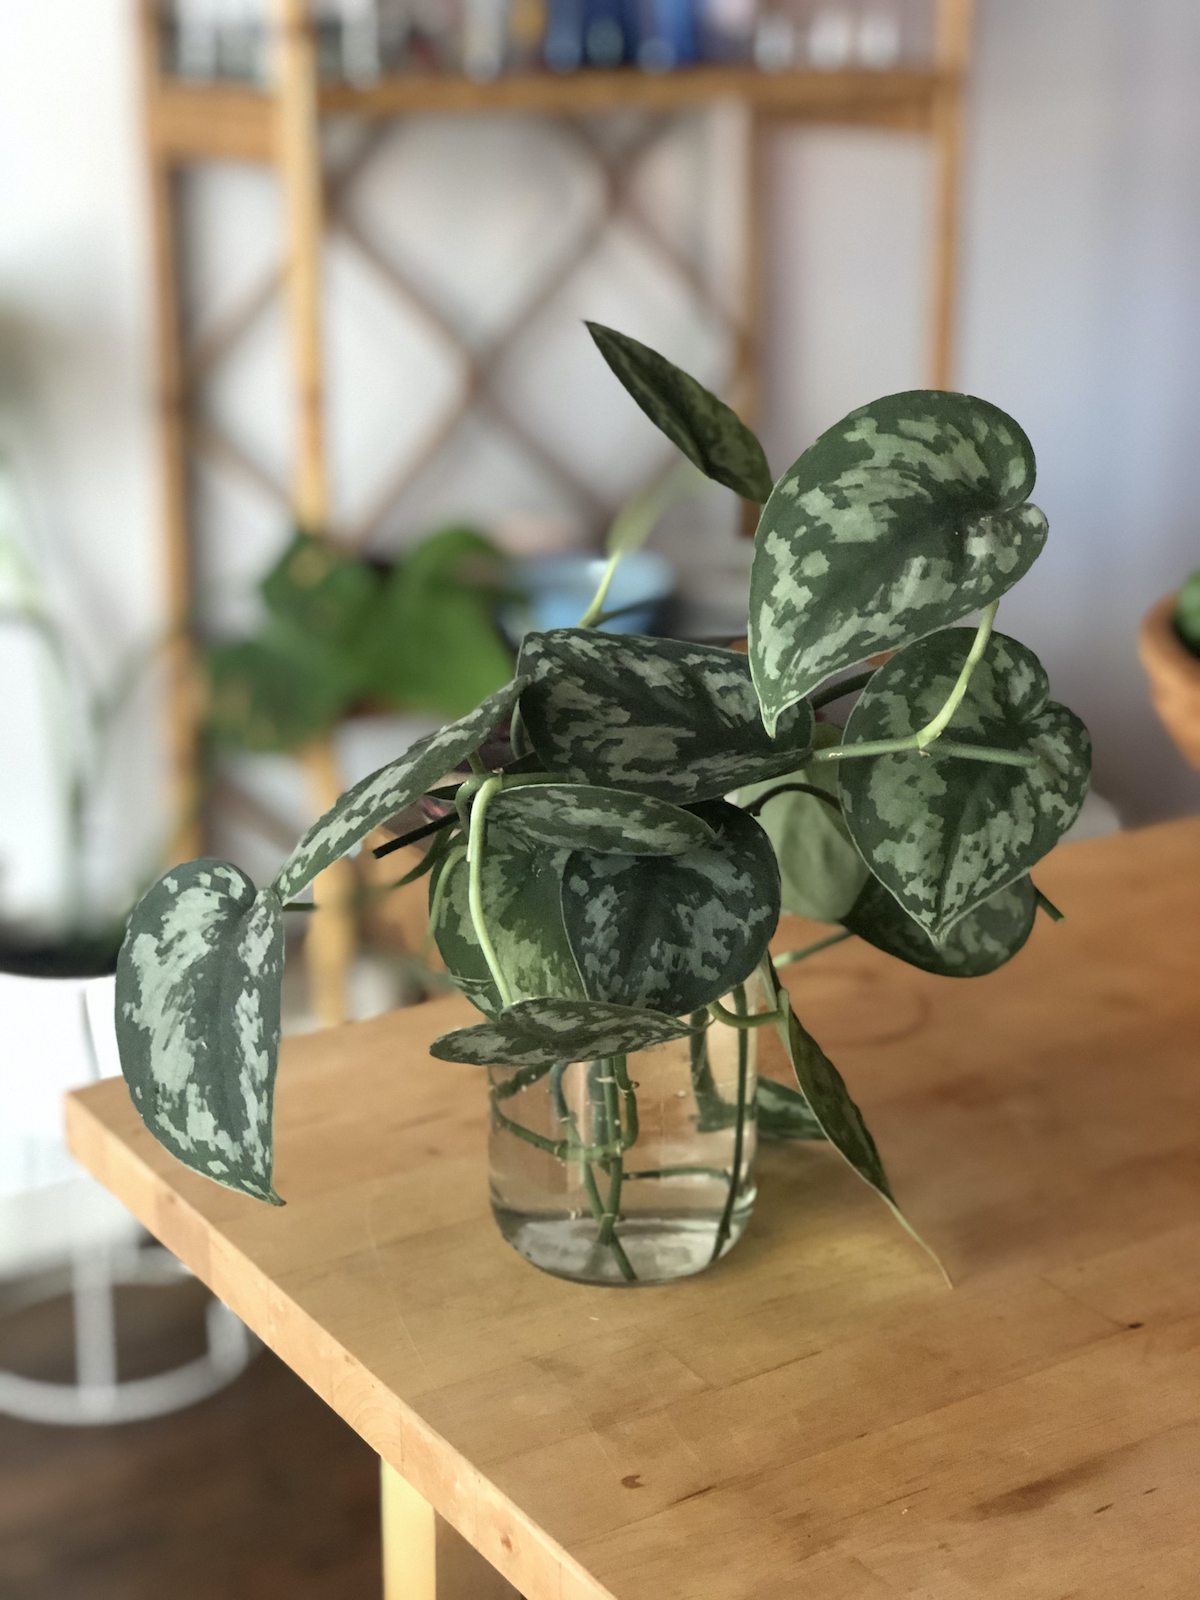 plant-propagation-leaf-cuttings-in-jar